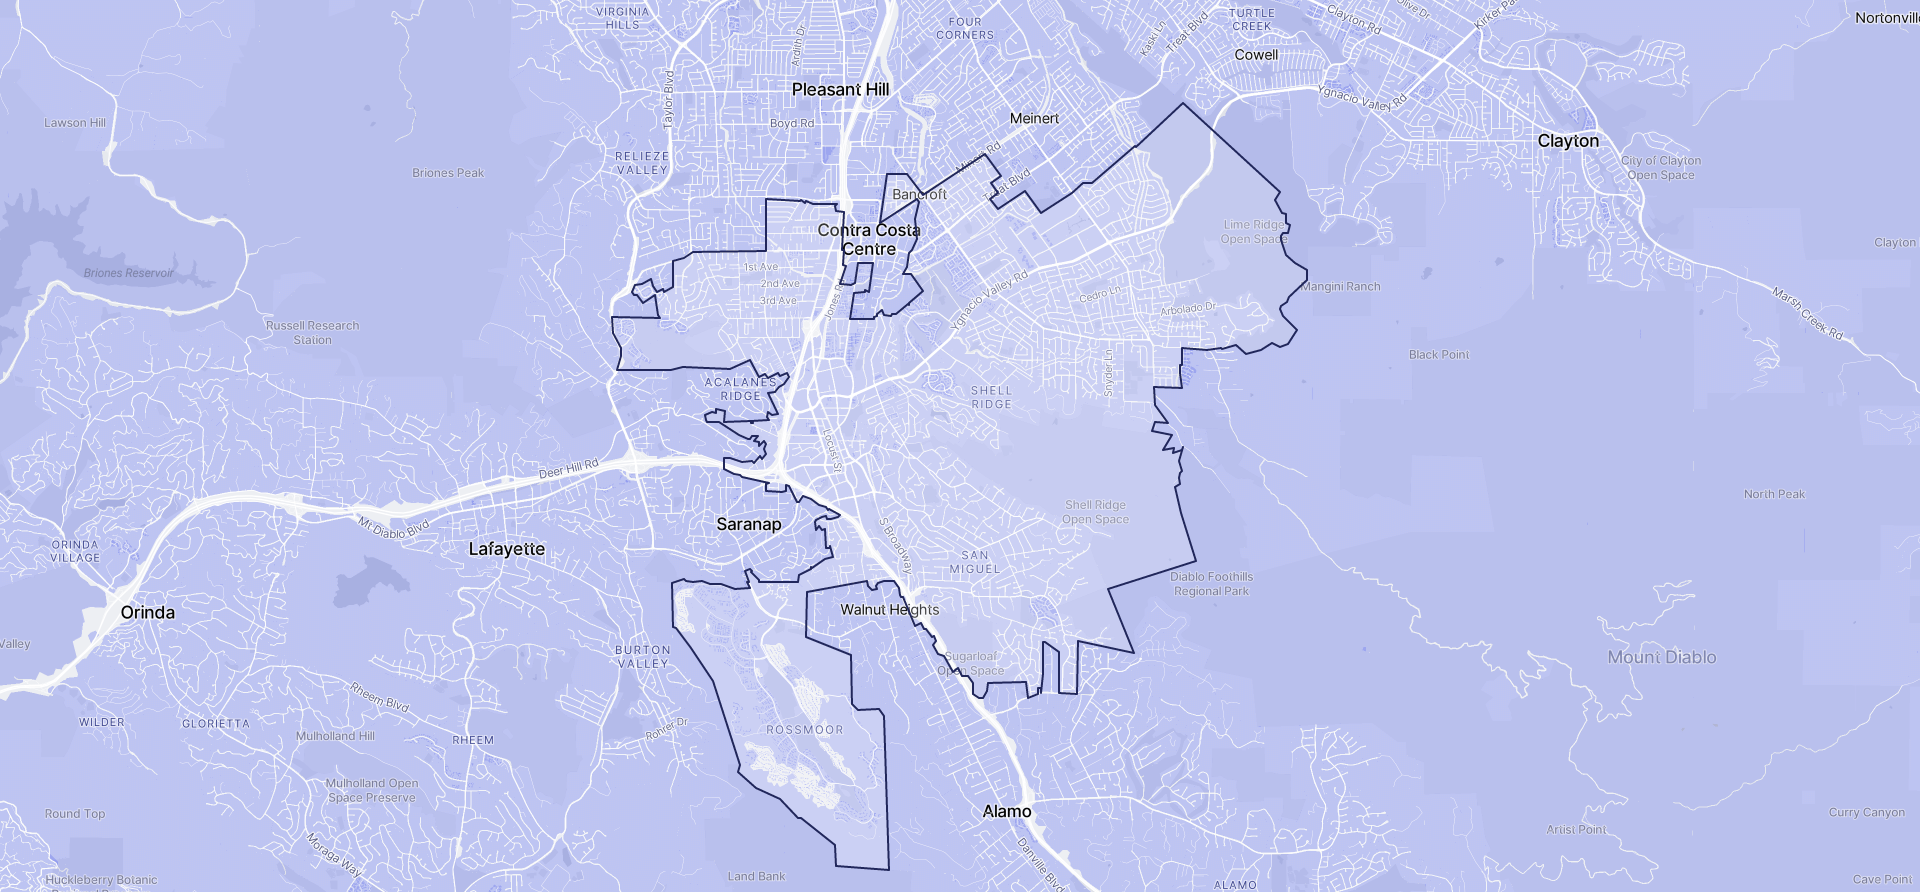 Image of Walnut Creek boundaries on a map.